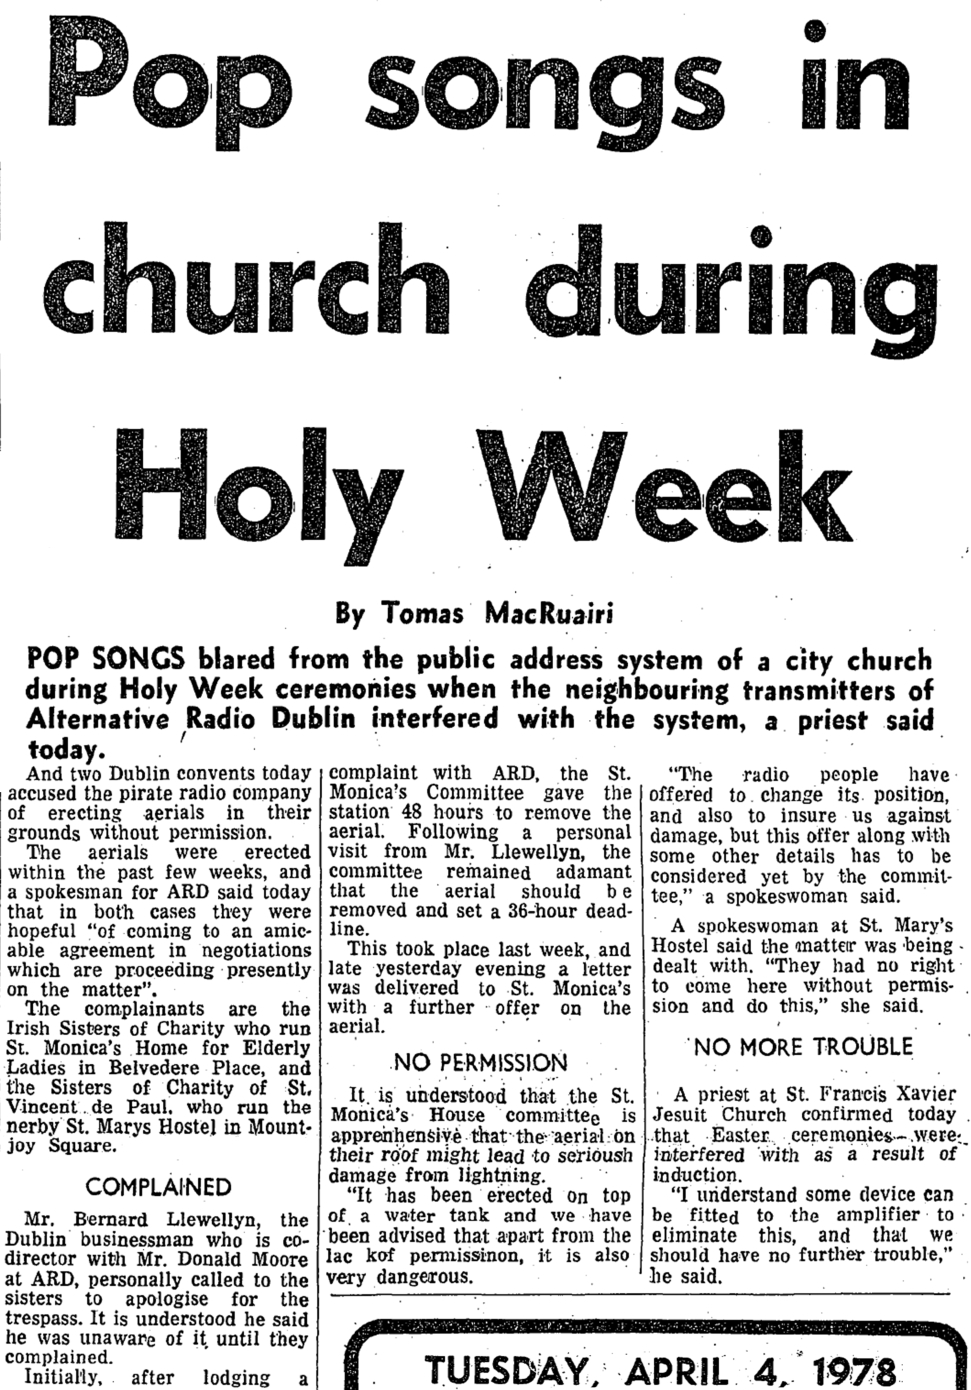 Pop songs in church during Holy Week was a newspaper headline from The Evening Press dated April 4th 1978